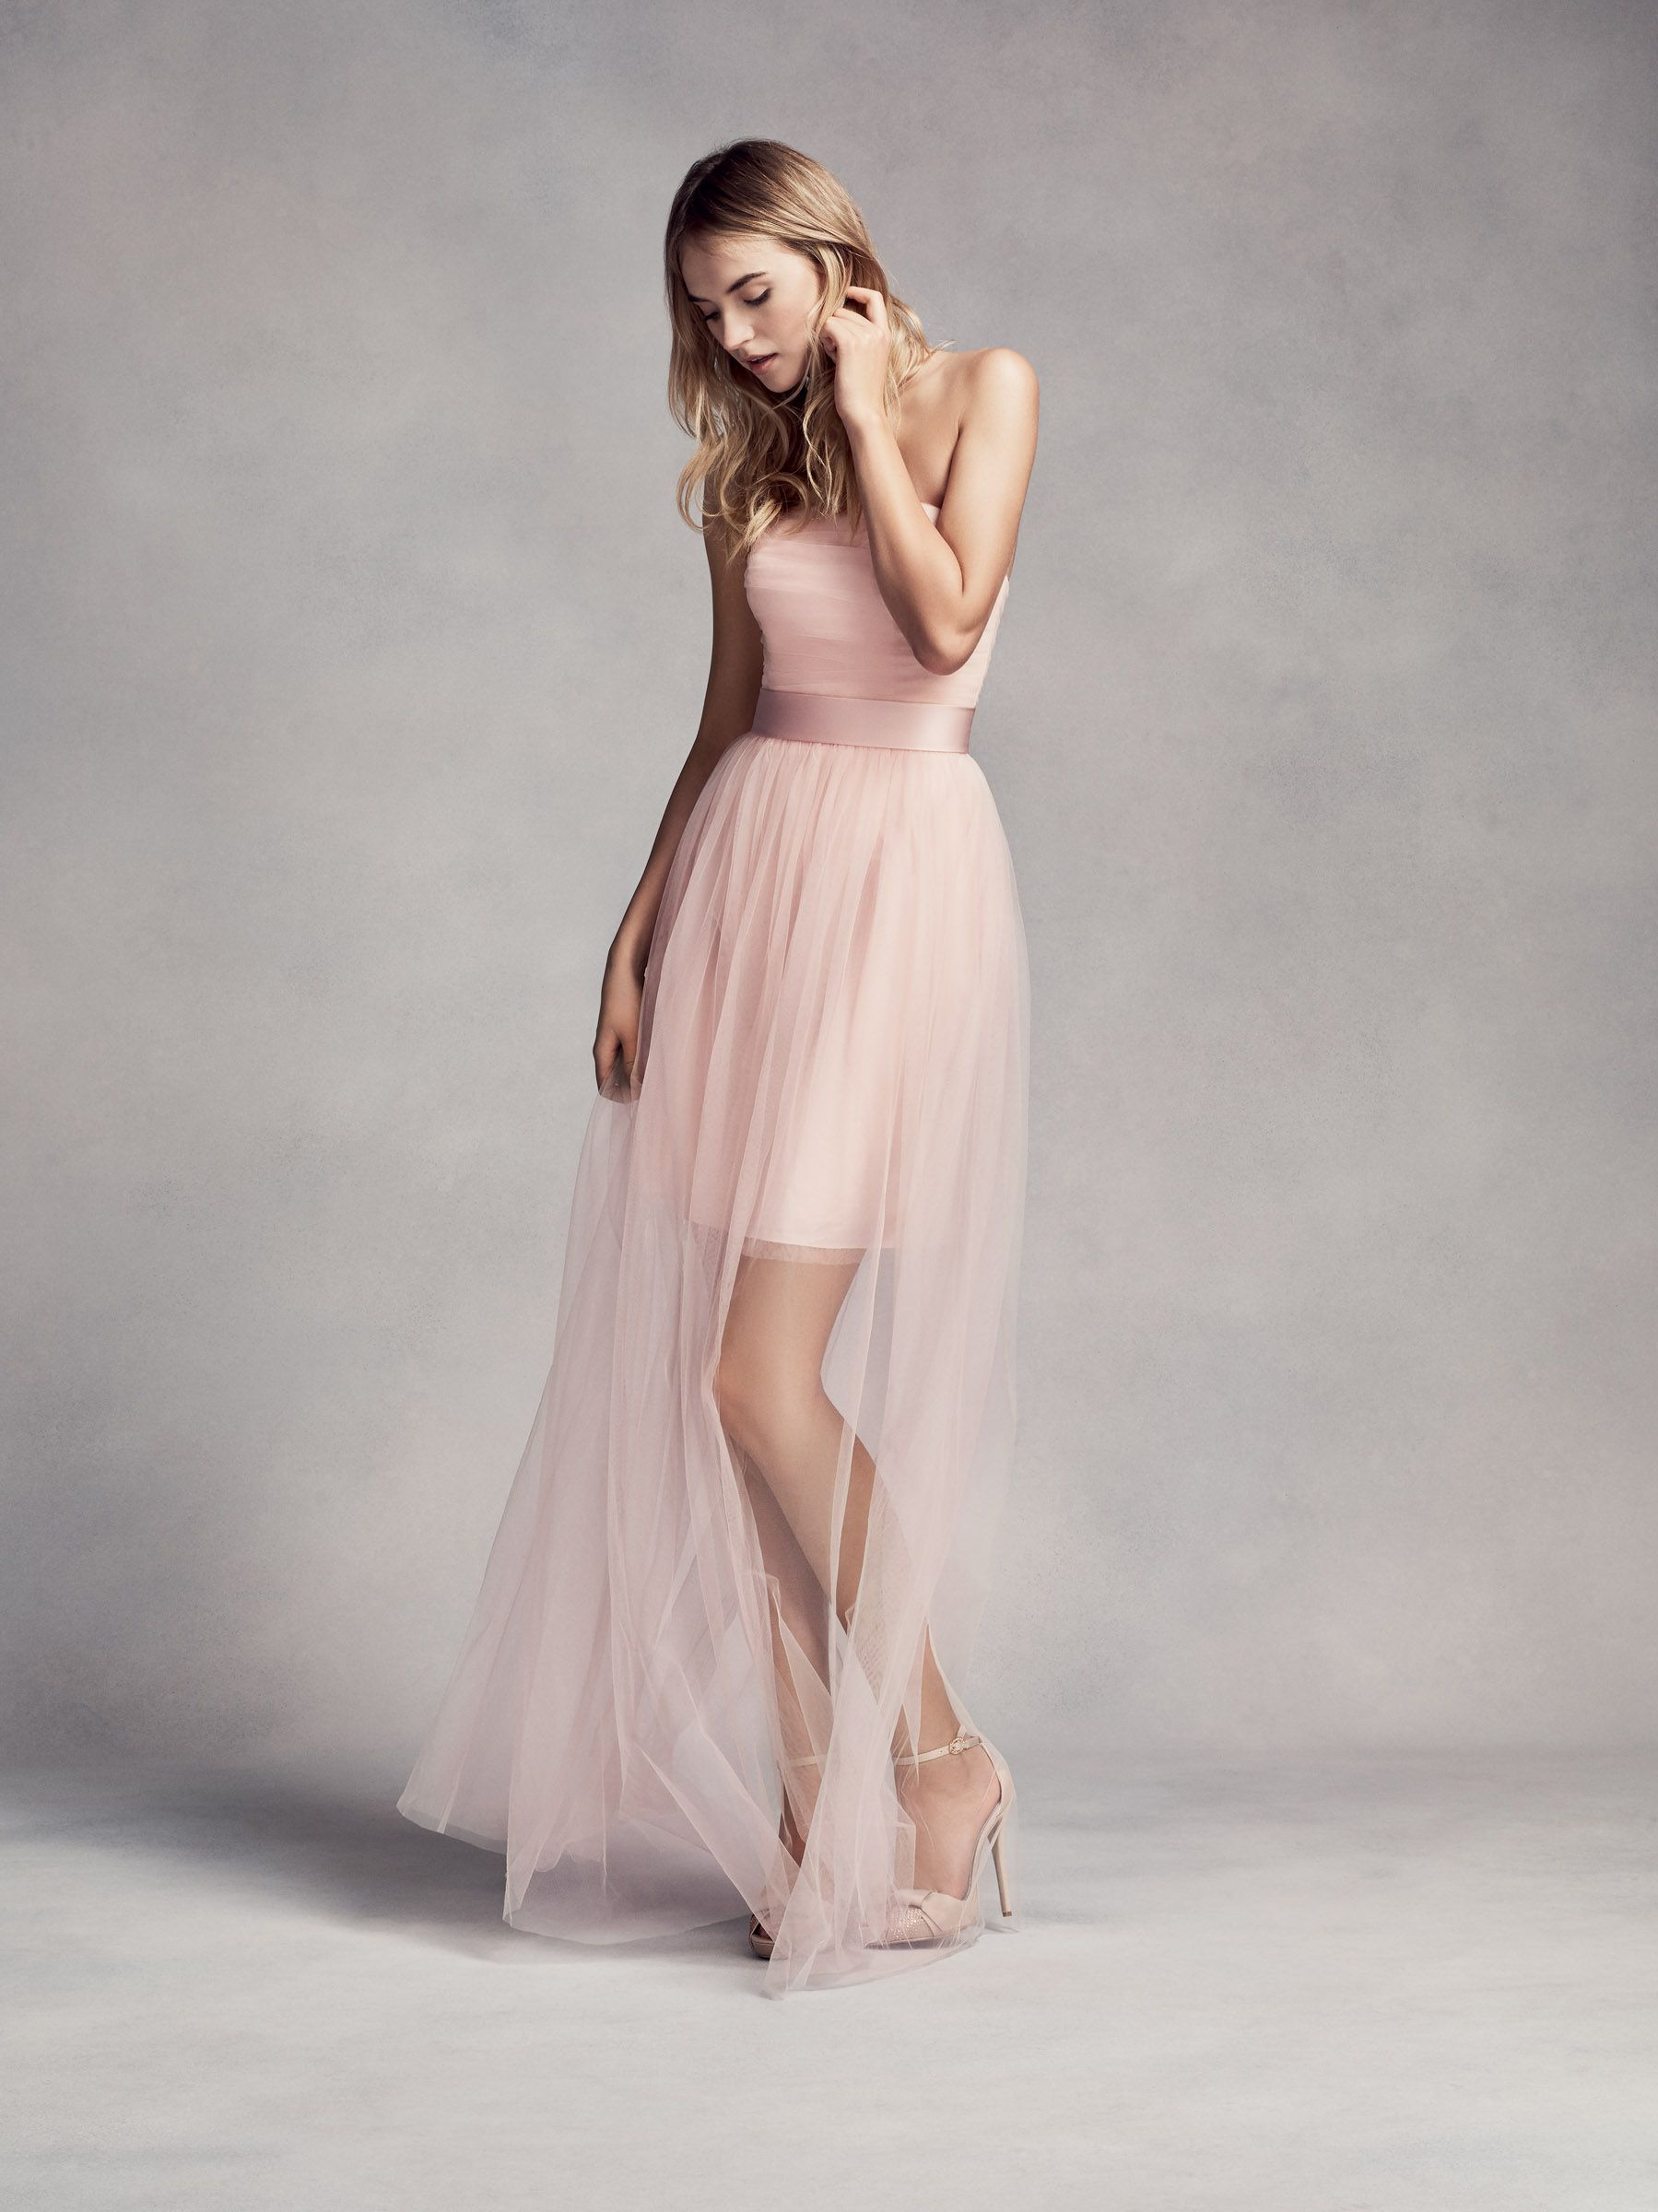 A Blush Pink Bridesmaid Dress With A Long Sheer Overlay By White X